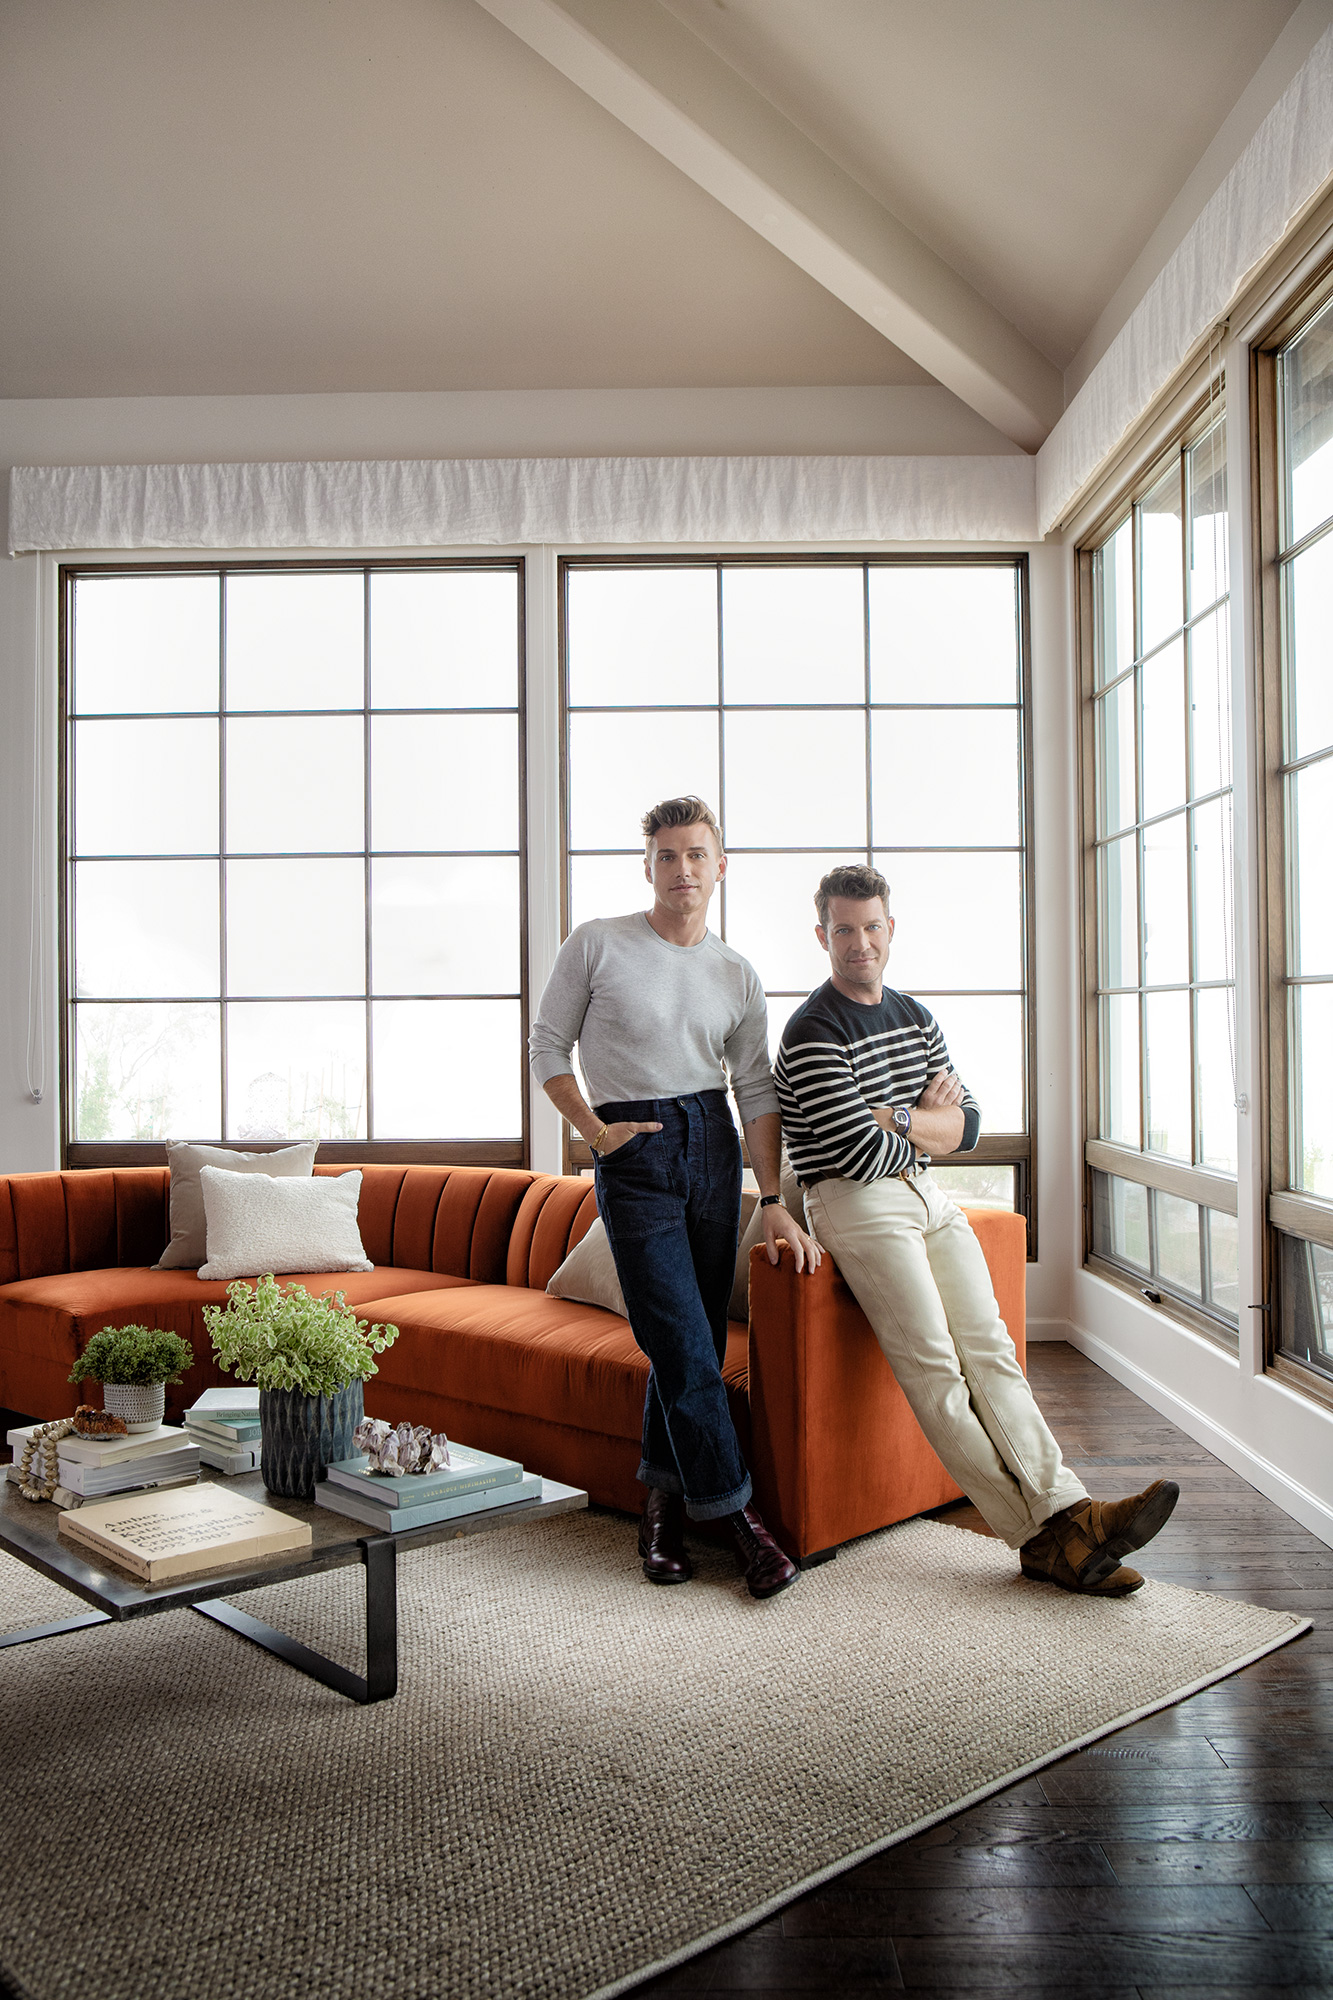 hot nolan round accent table nate berkus jeremiah brent living spaces pedestal and debut furniture line inspired their own home basement antique white entry room essentials